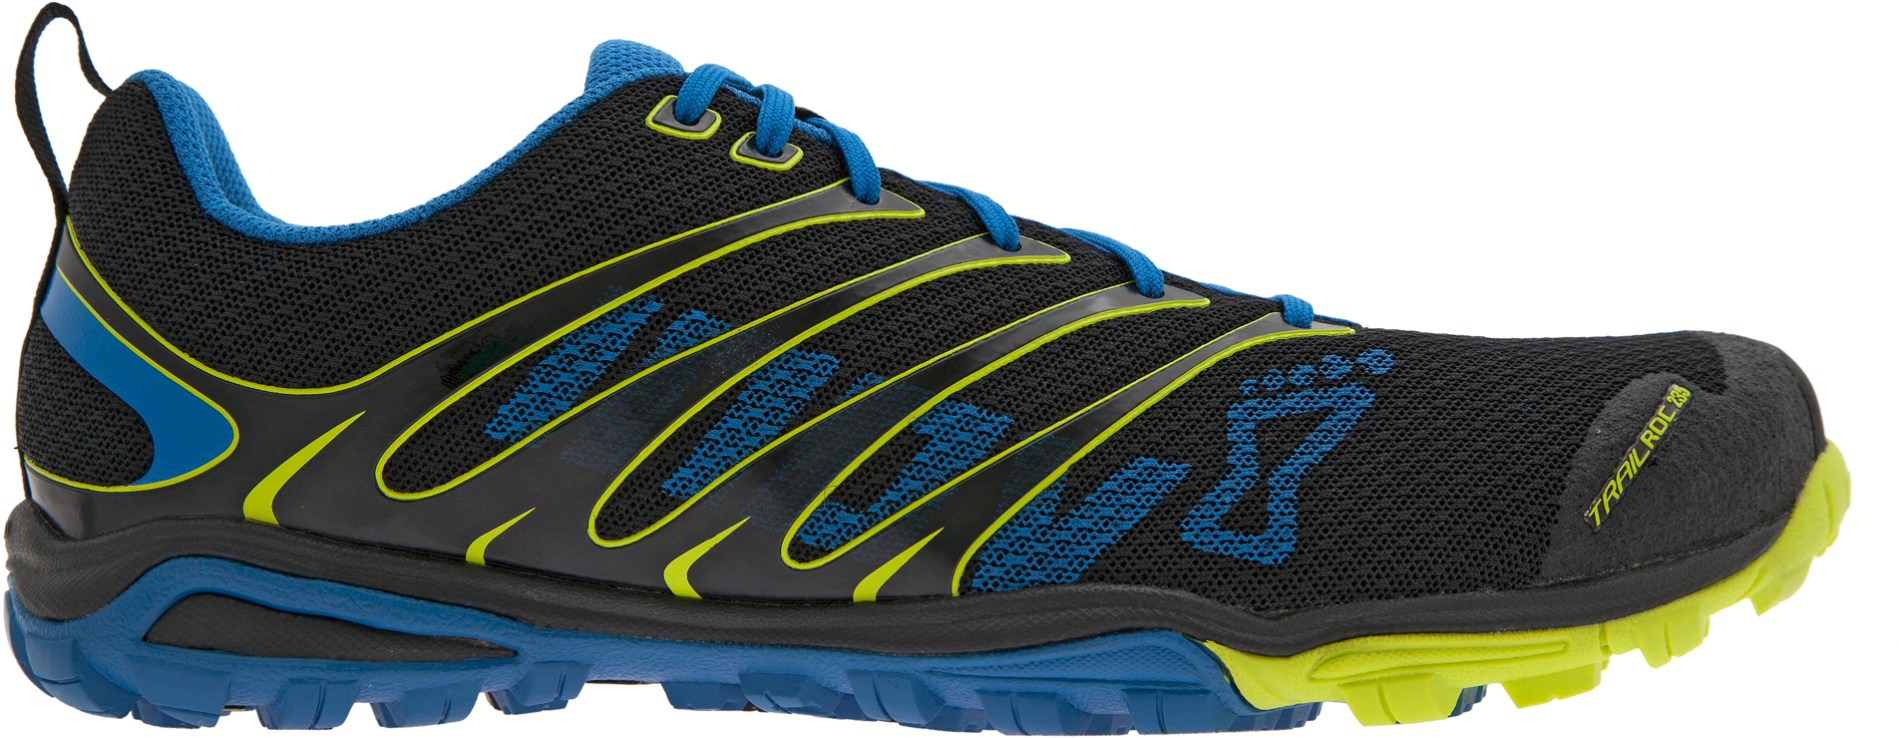 Wiggle   Inov-8 Trailroc 235 Shoes - AW14   Offroad Running Shoes